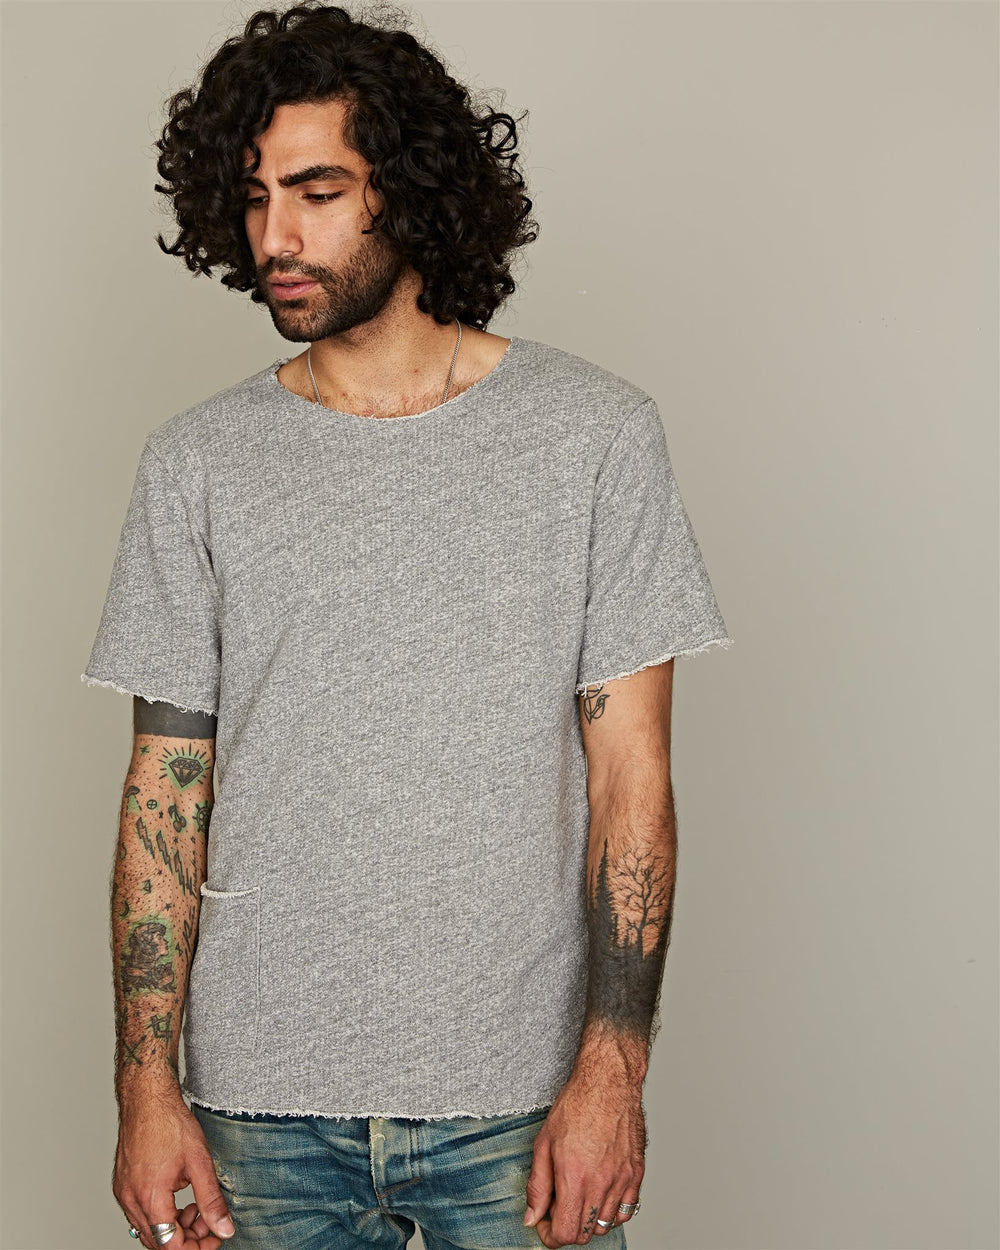 S/S SWEAT CUT OFF GREY